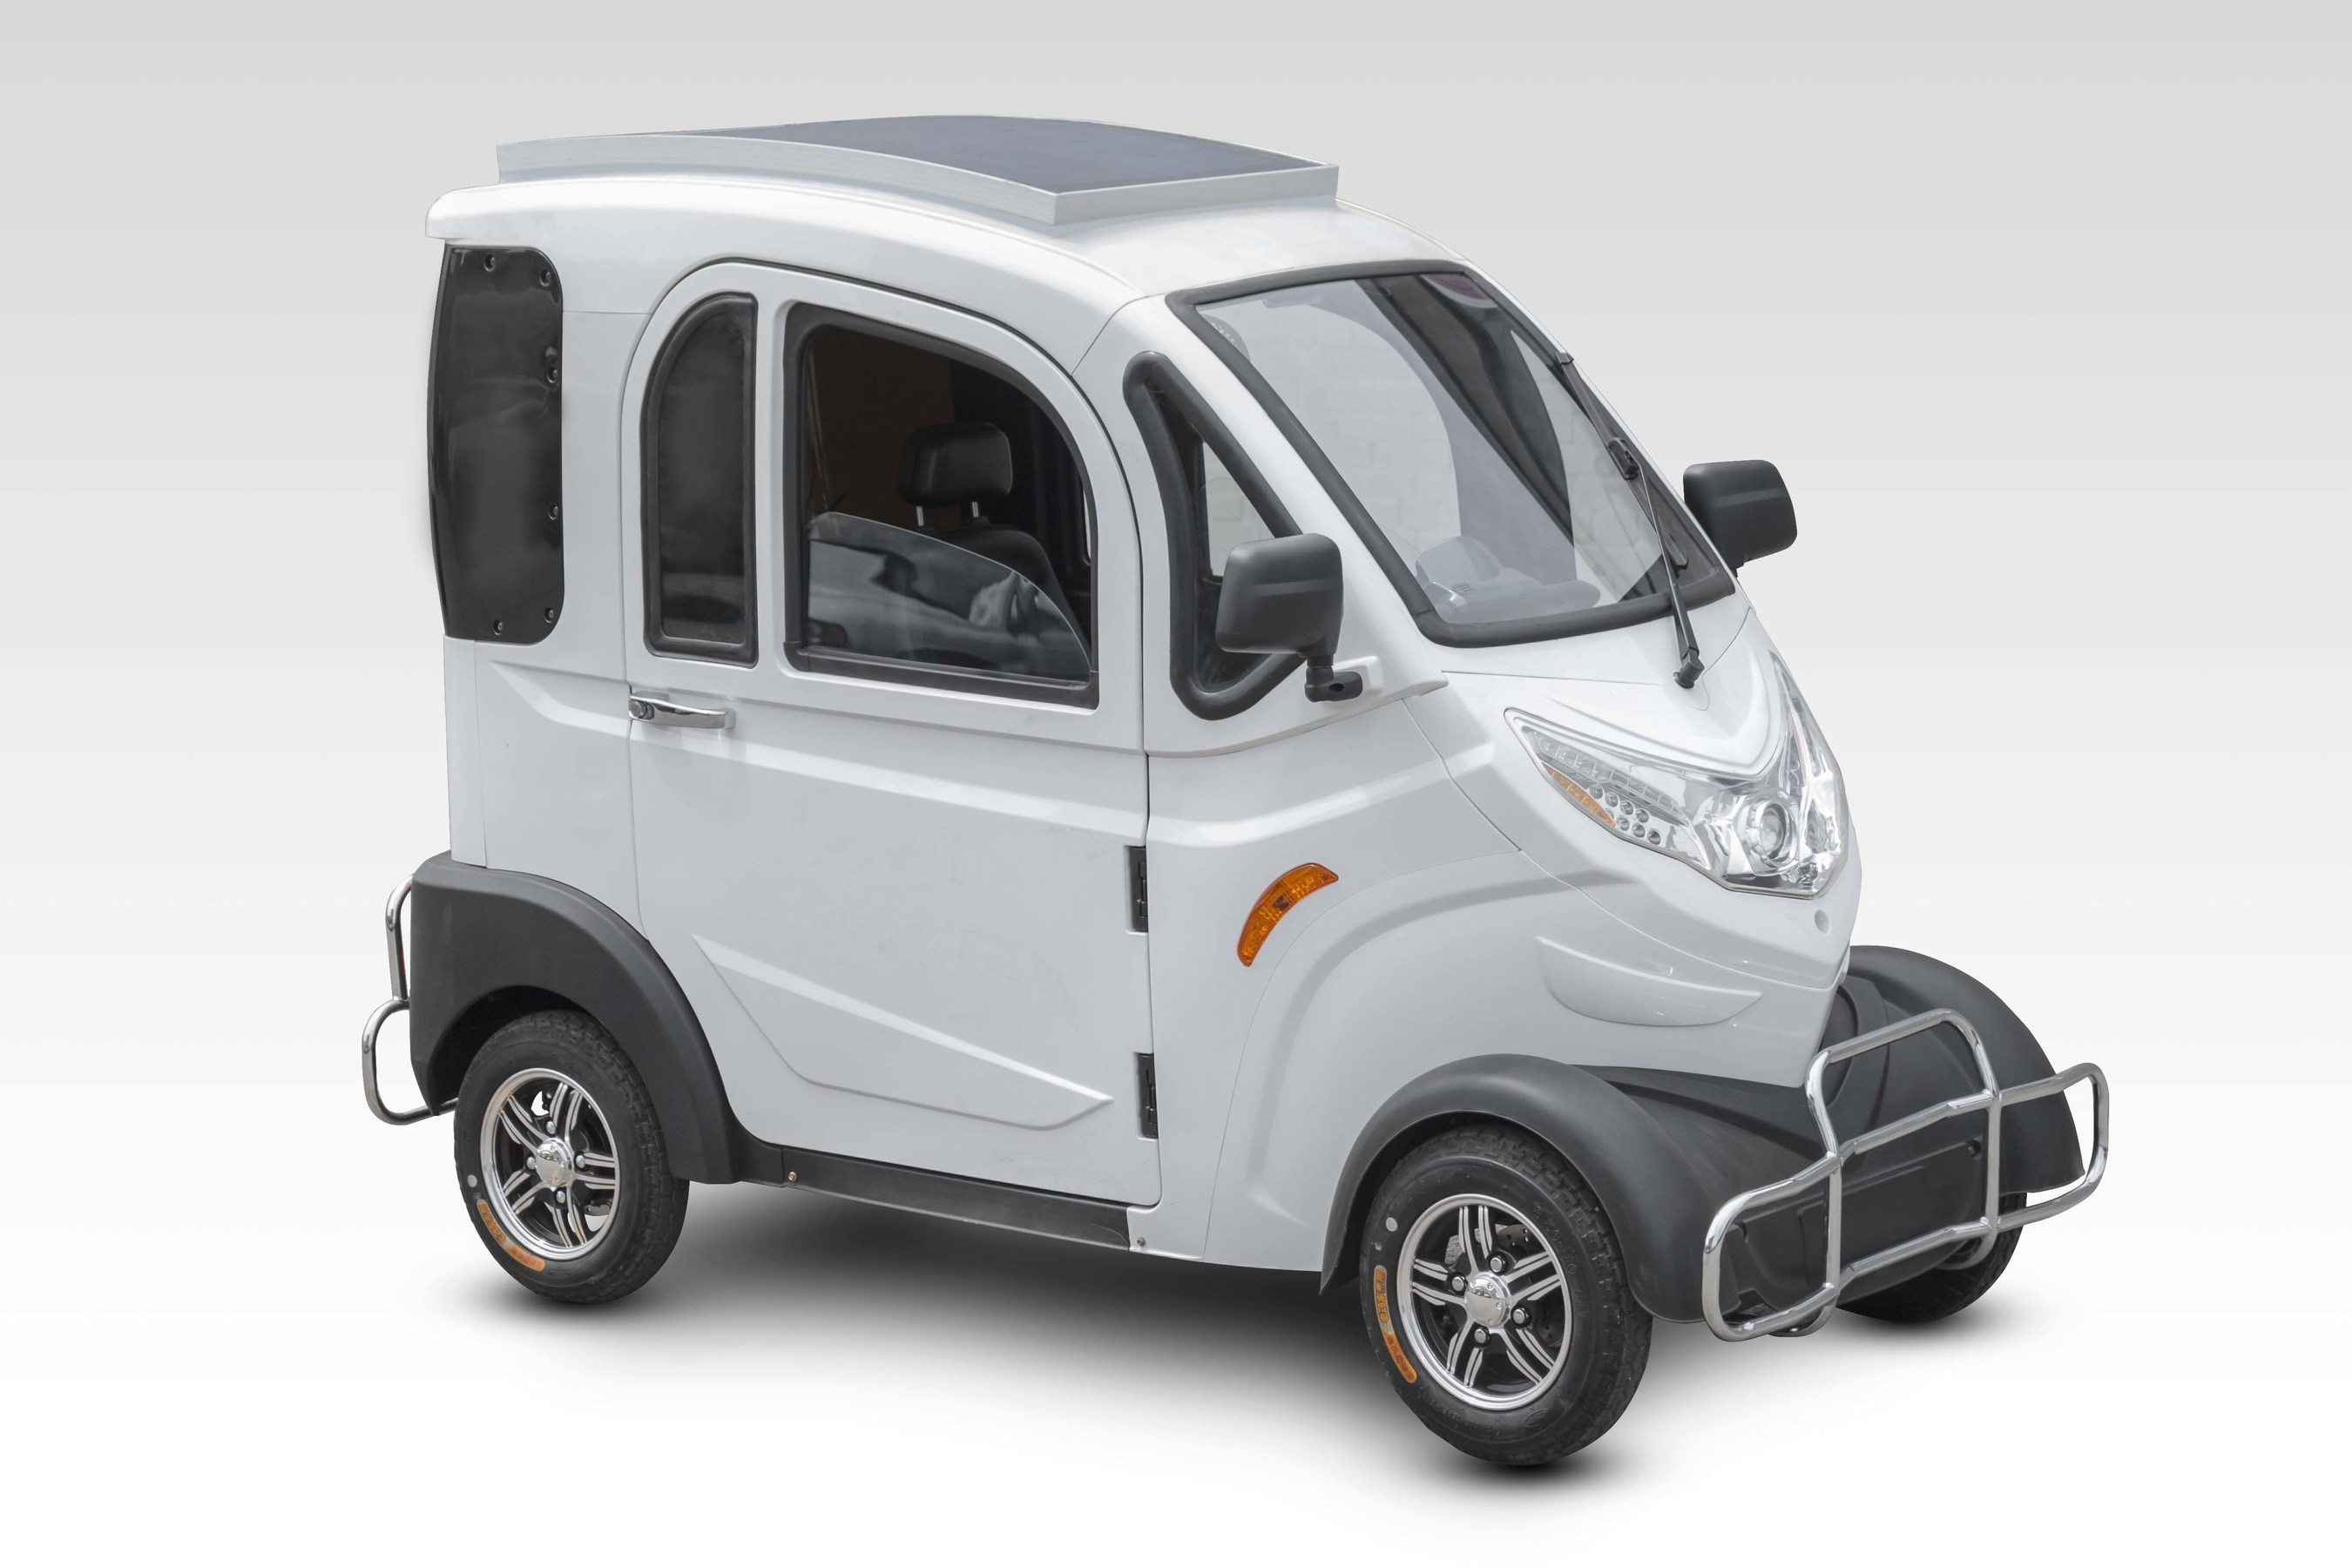 Daymak Launches New Boomerbuggy X, the First Solar Mobility Enclosed